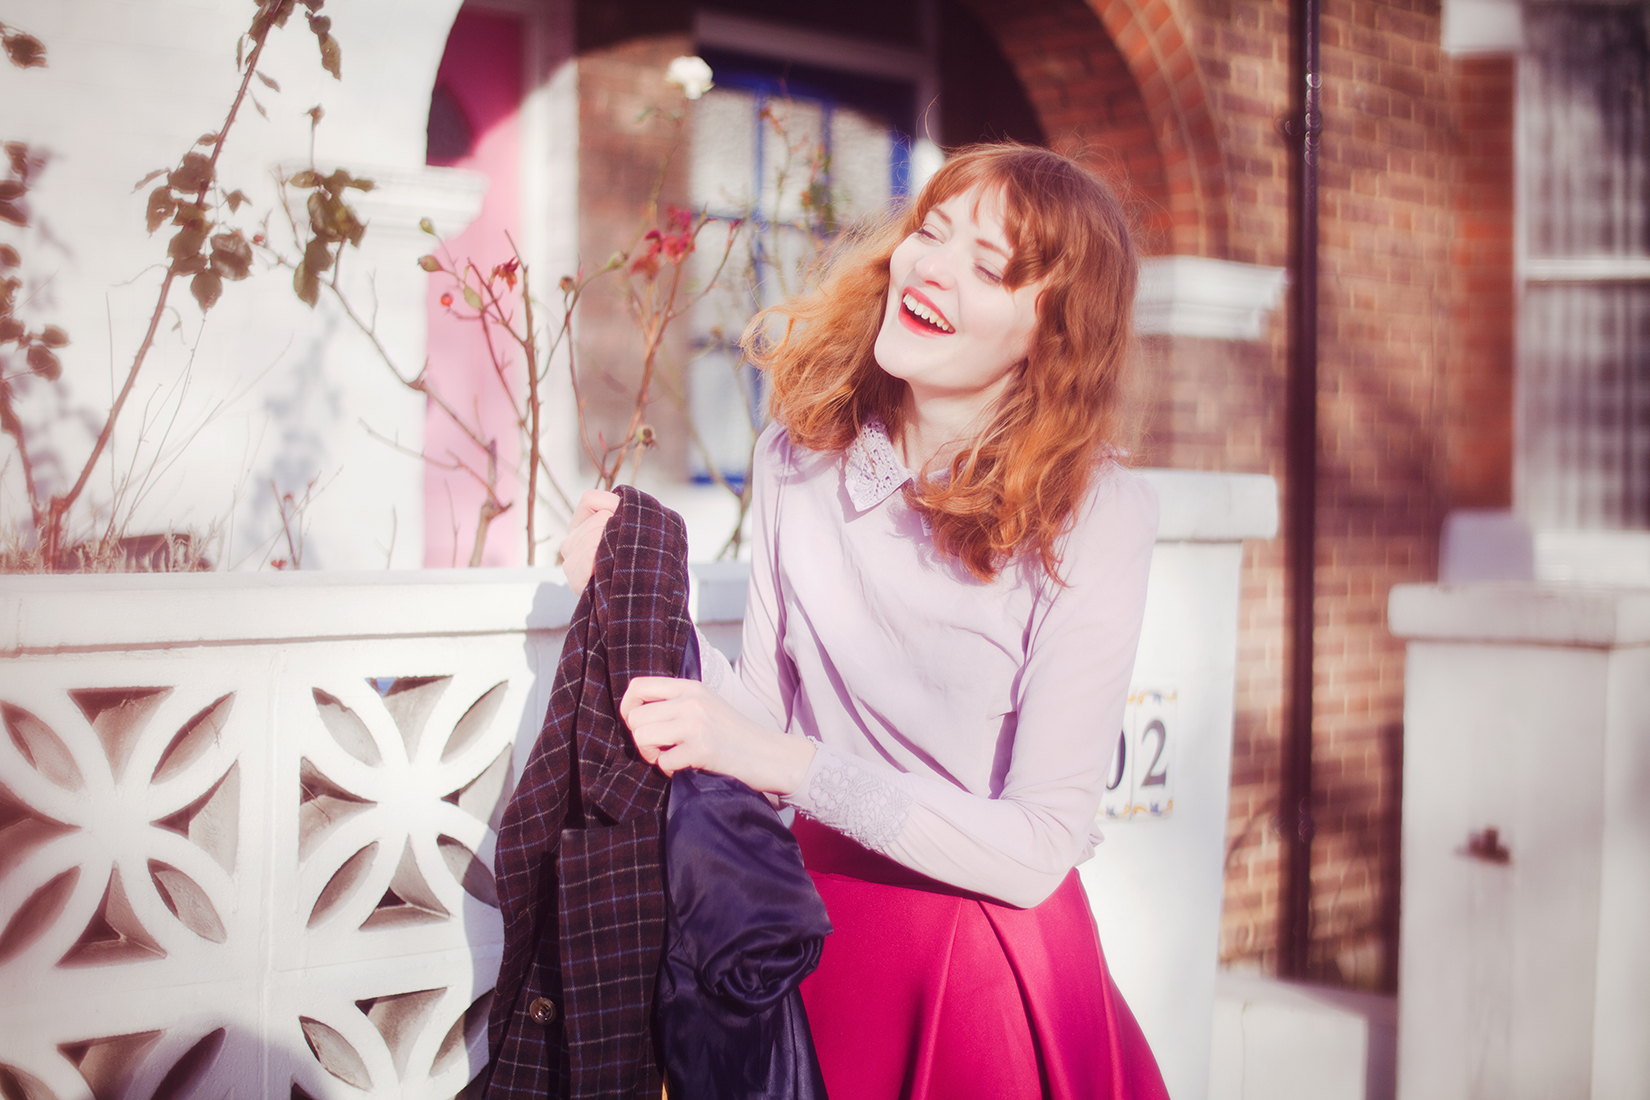 Fashion photoshoot behind the scenes - laughing redhead model by London based photographer Ailera Stone.